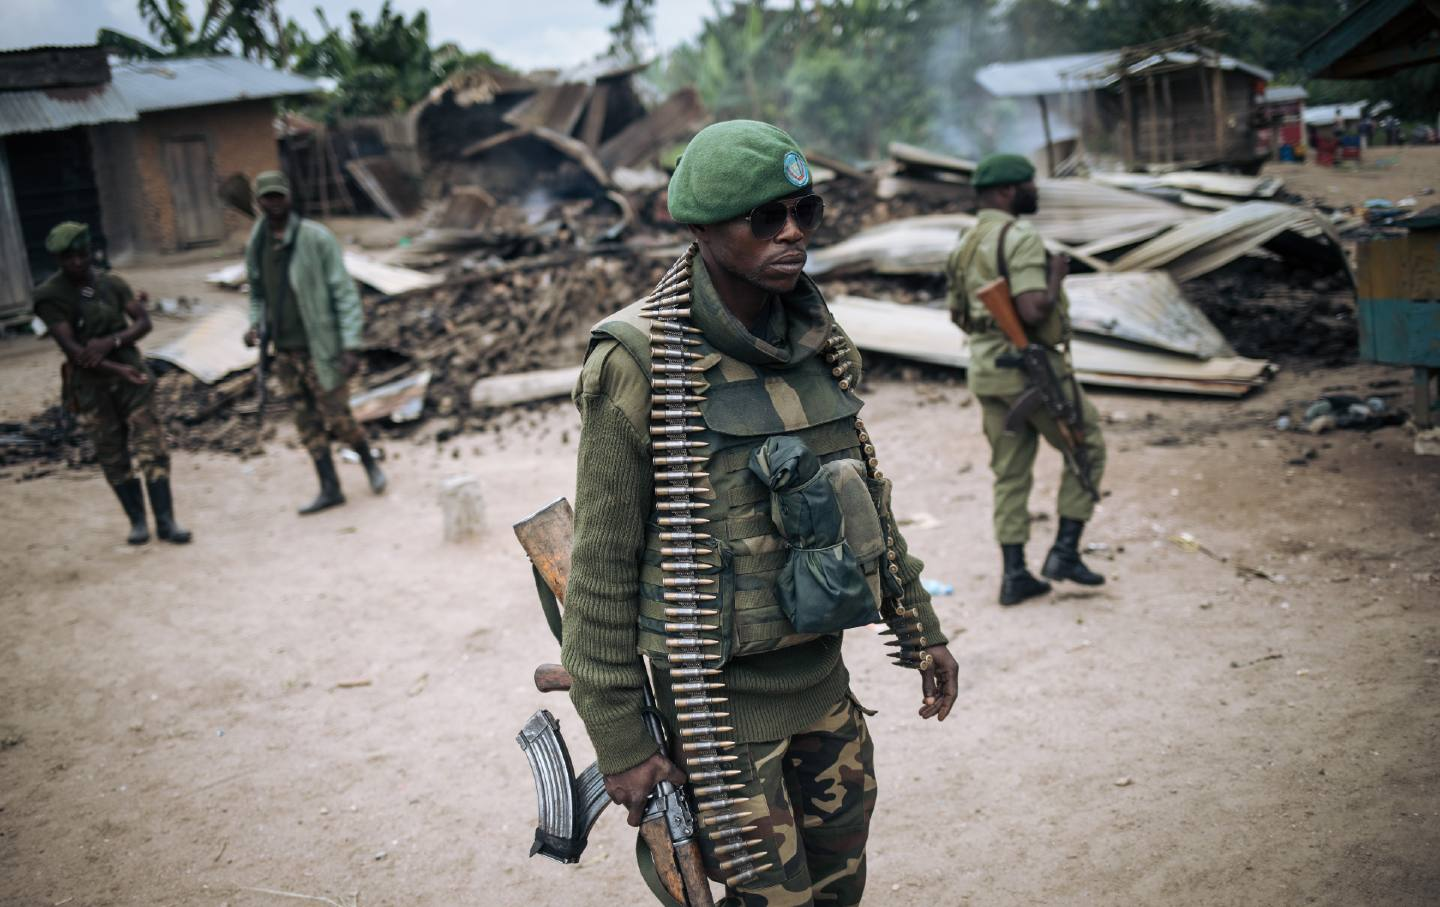 The Bewildering Search for the Islamic State in Congo - The Nation